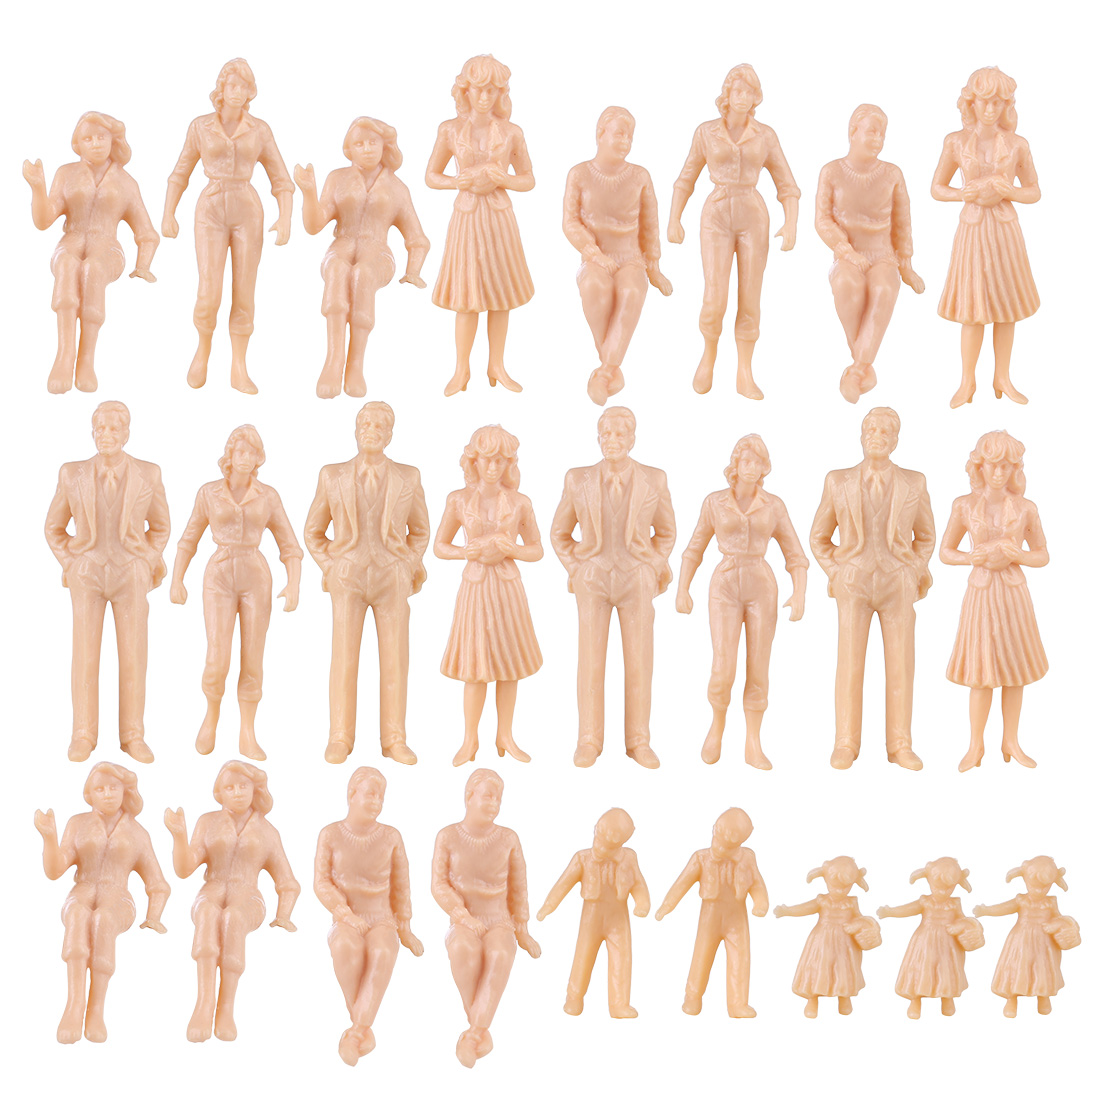 25Pcs 1:25 Scale Miniature People Figures Model For Train Railway Alloy RC Car Sand Table Toy For Kid Children-Skin(Random Type)